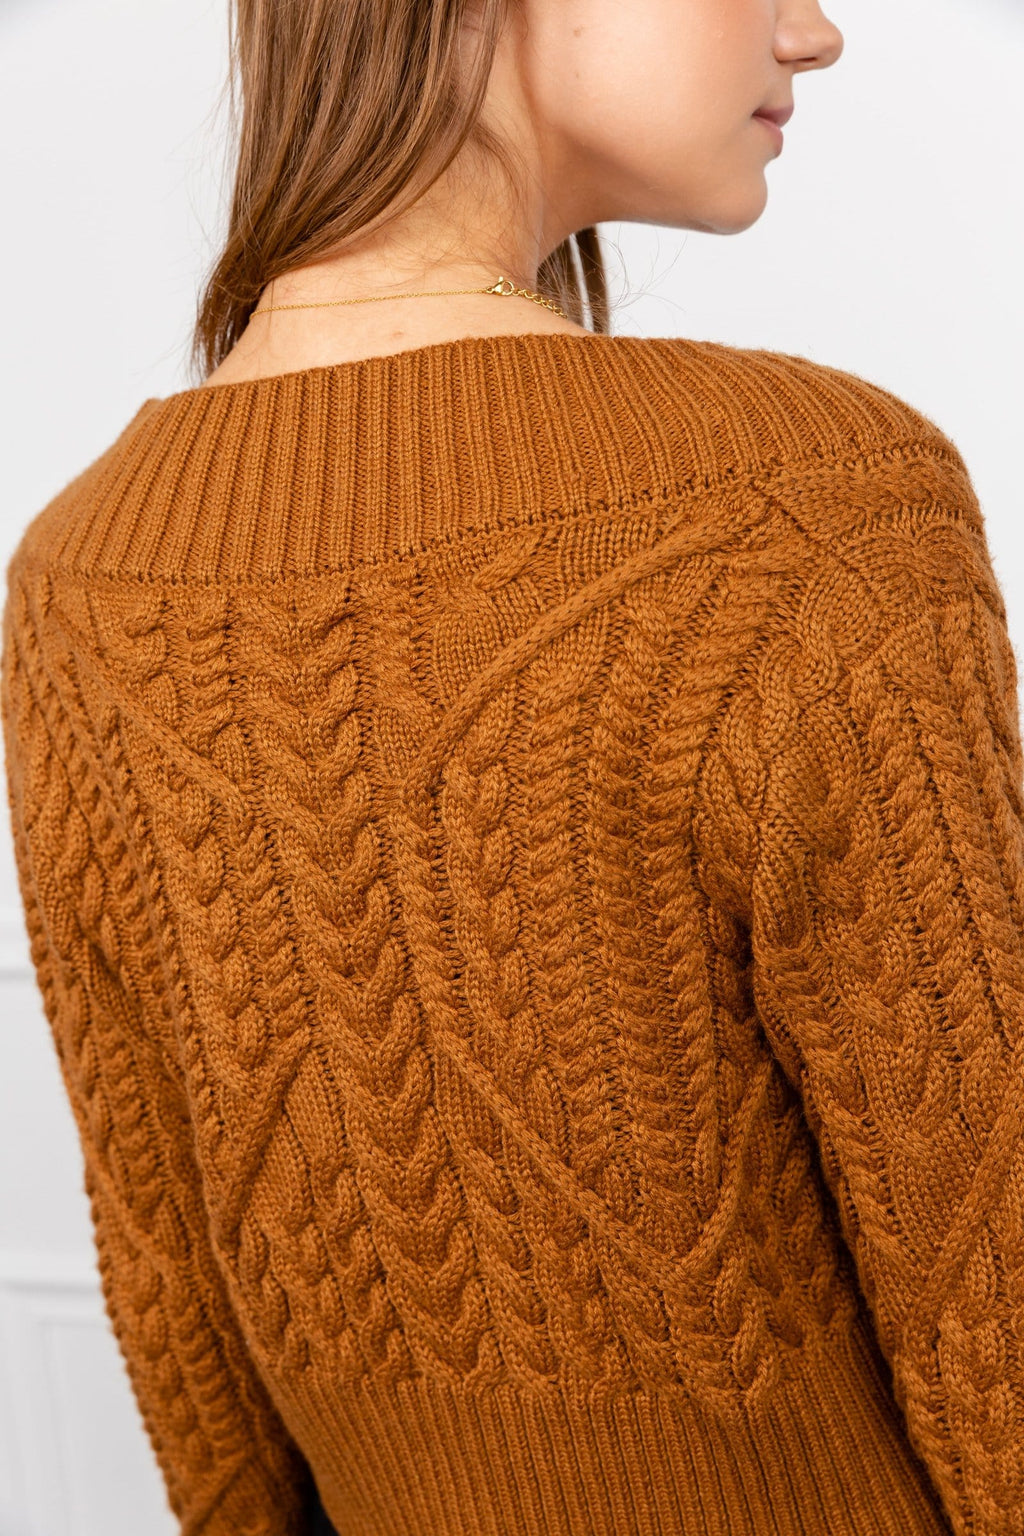 Auburn Braided Rib Knit Sweater